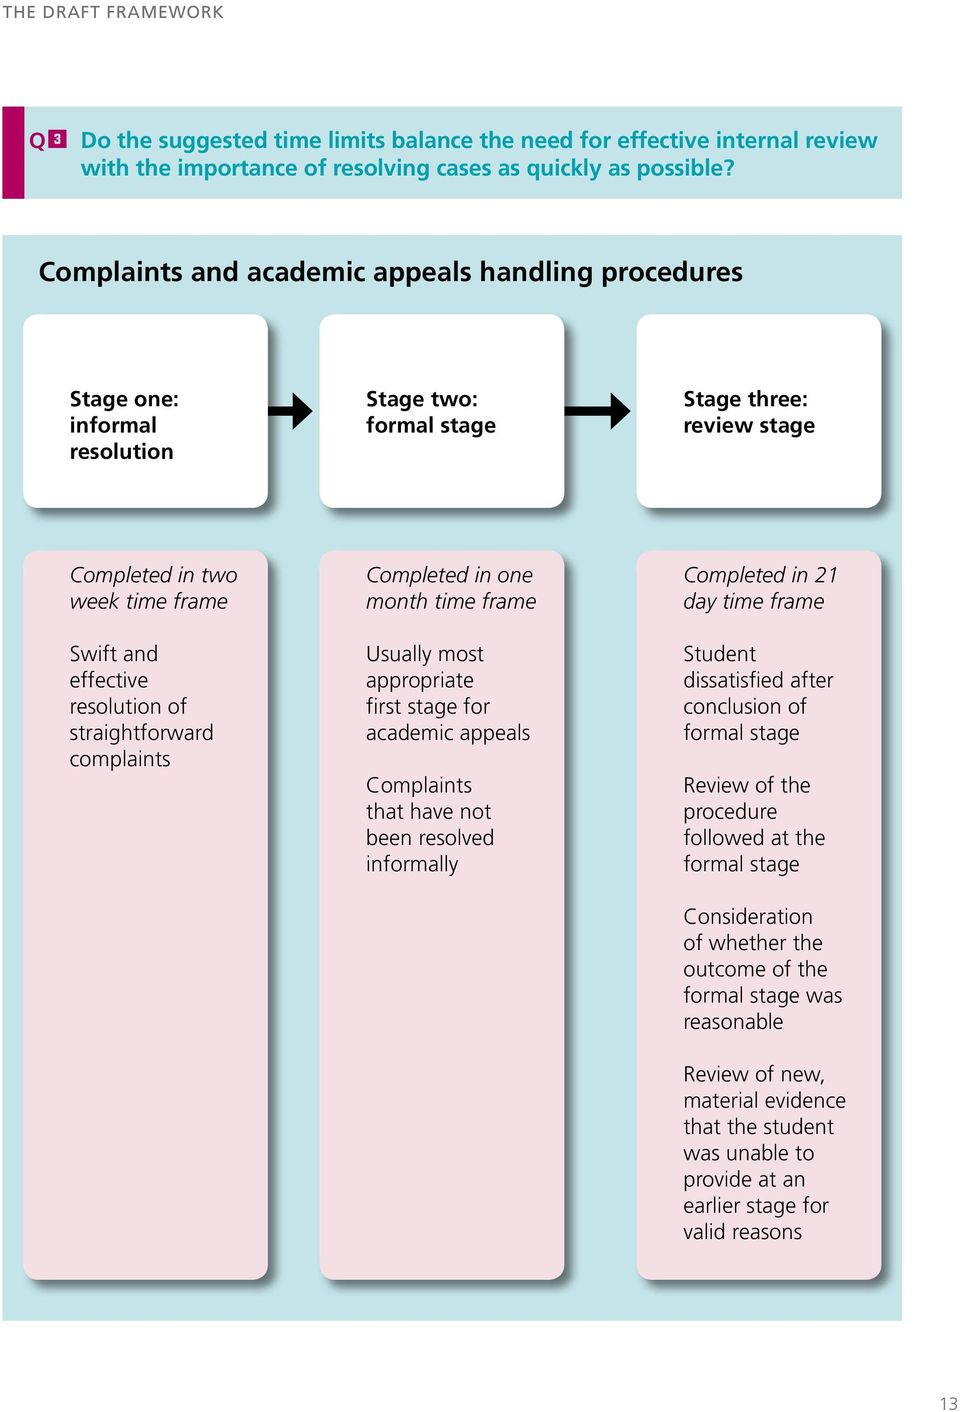 straightforward complaints Completed in one month time frame Usually most appropriate first stage for academic appeals Complaints that have not been resolved informally Completed in 21 day time frame